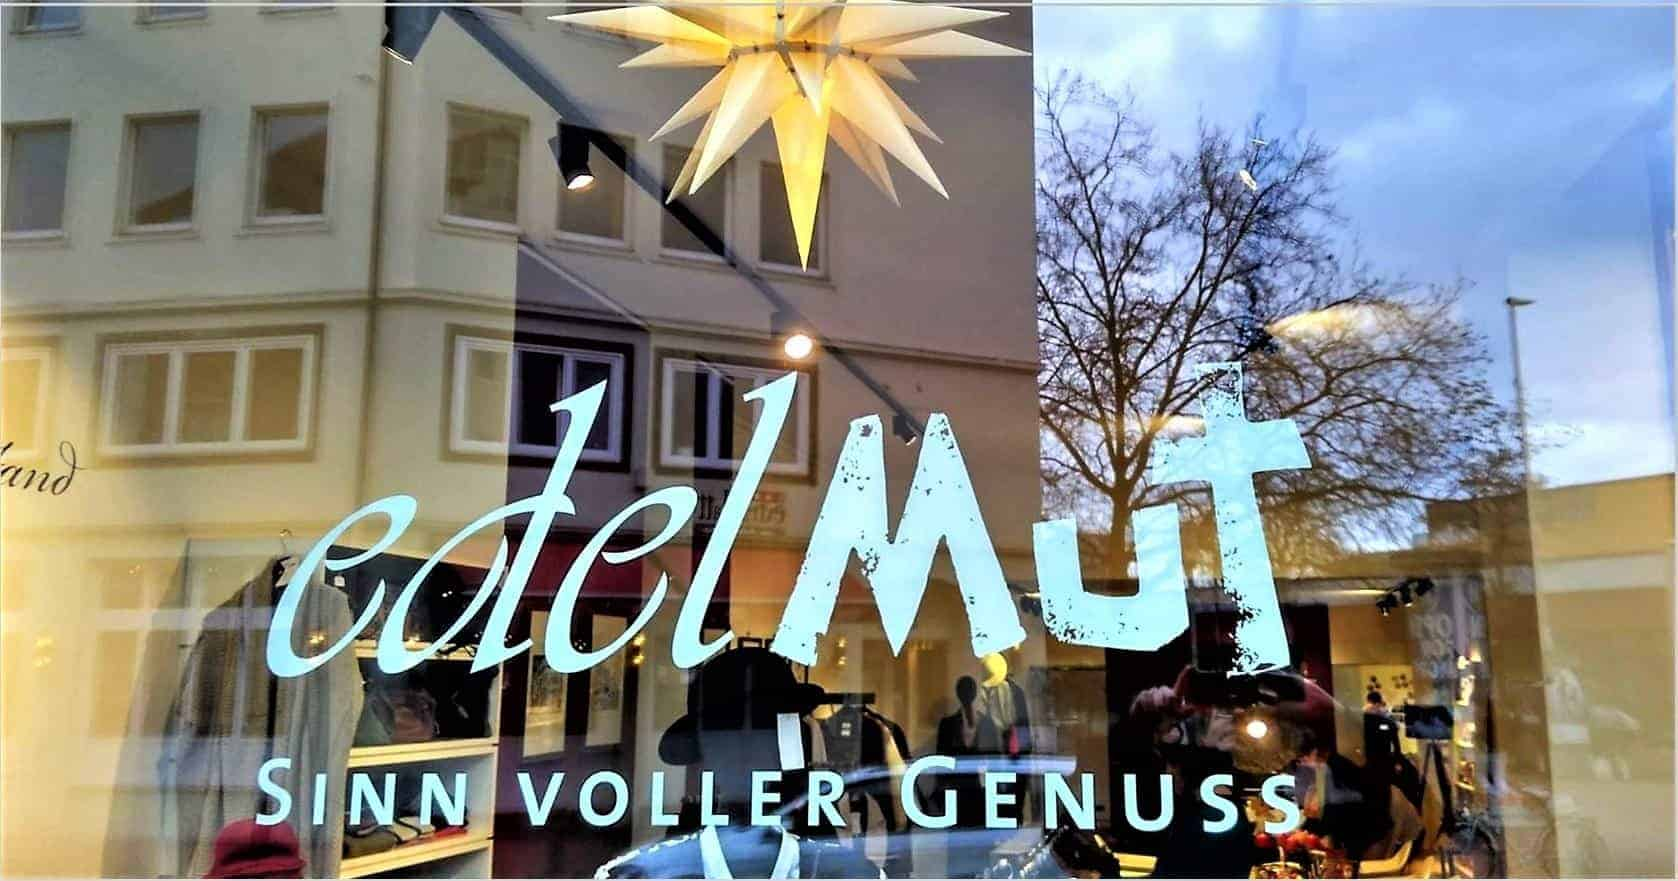 style hannover edelmut fb 1 - Homepage Style Hannover